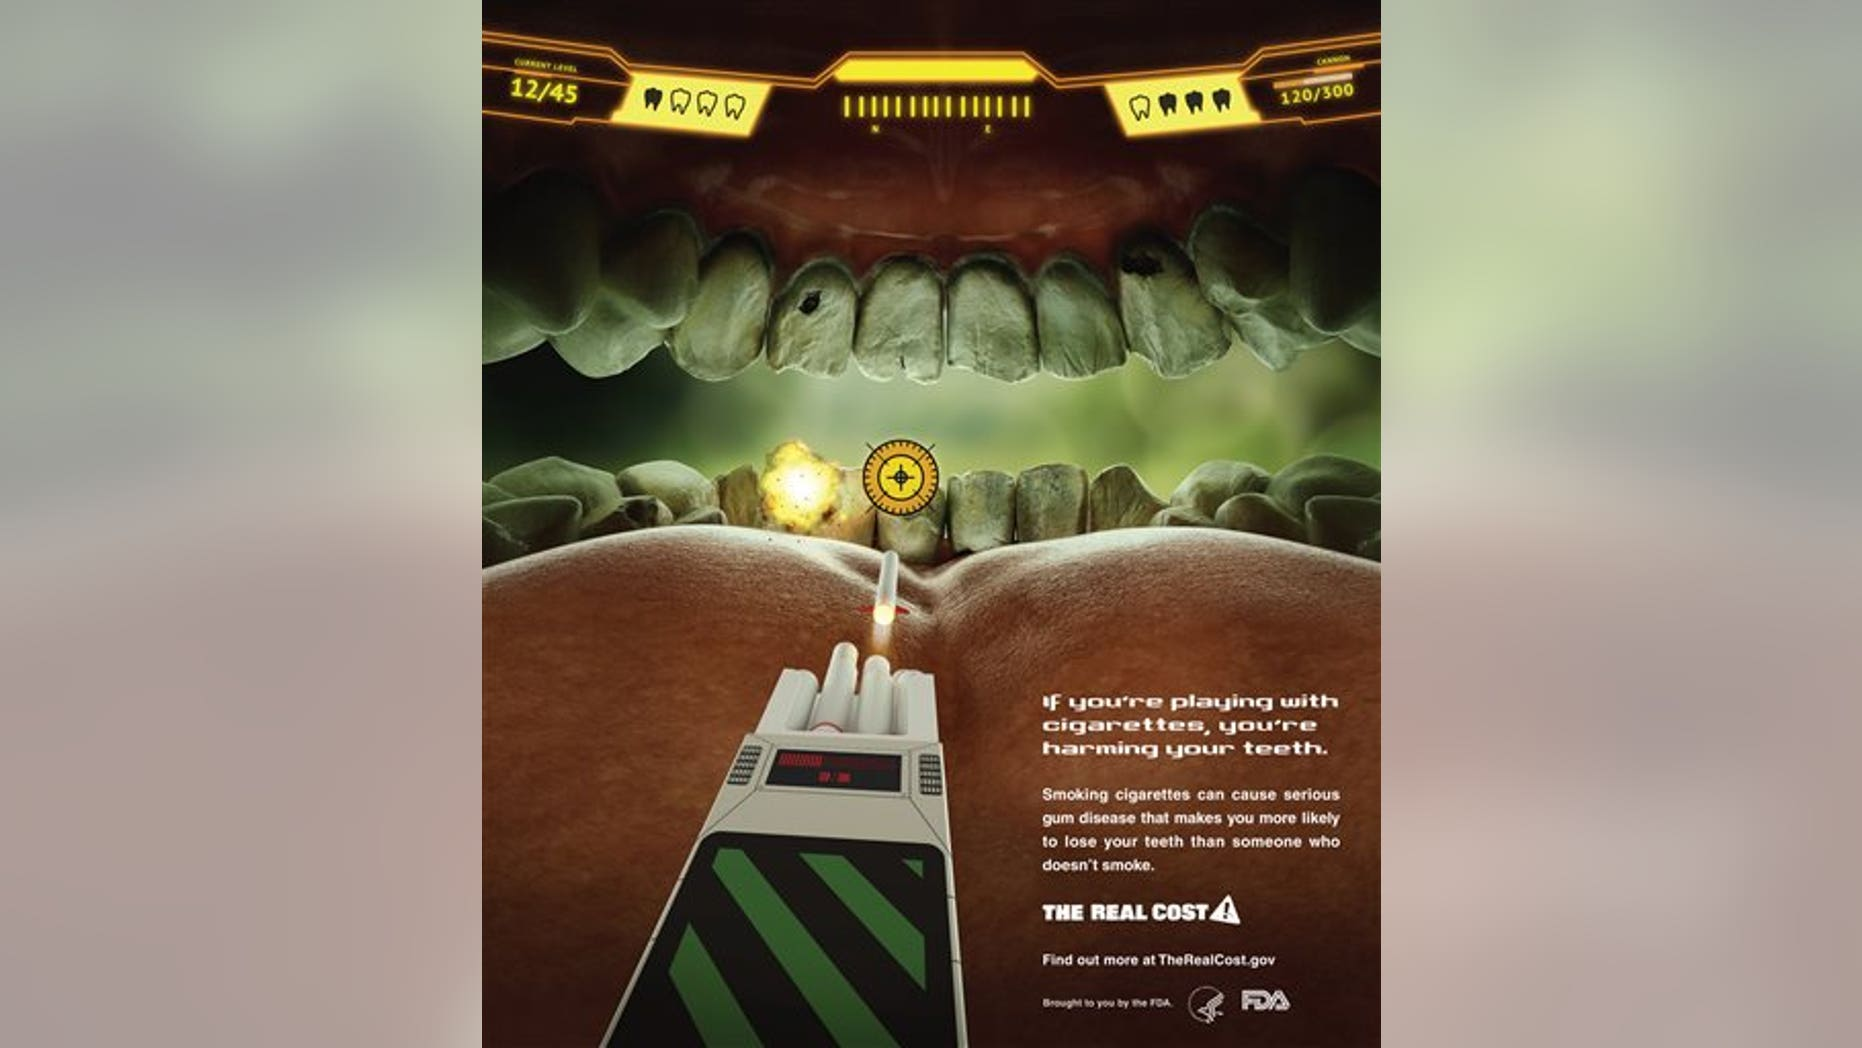 This undated image provided by the Food and Drug Administration shows the federal agency's new ad campaign featuring yellow teeth to show the costs associated with cigarette smoking. The federal agency said Tuesday, Feb. 4, 2014, it is launching a $115 million multimedia education campaign called The Real Cost thats aimed at stopping teenagers from smoking and encouraging them to quit. Advertisements will run in more than 200 markets throughout the U.S. for at least one year beginning Feb. 11.  (AP Photo/Food and Drug Administration)